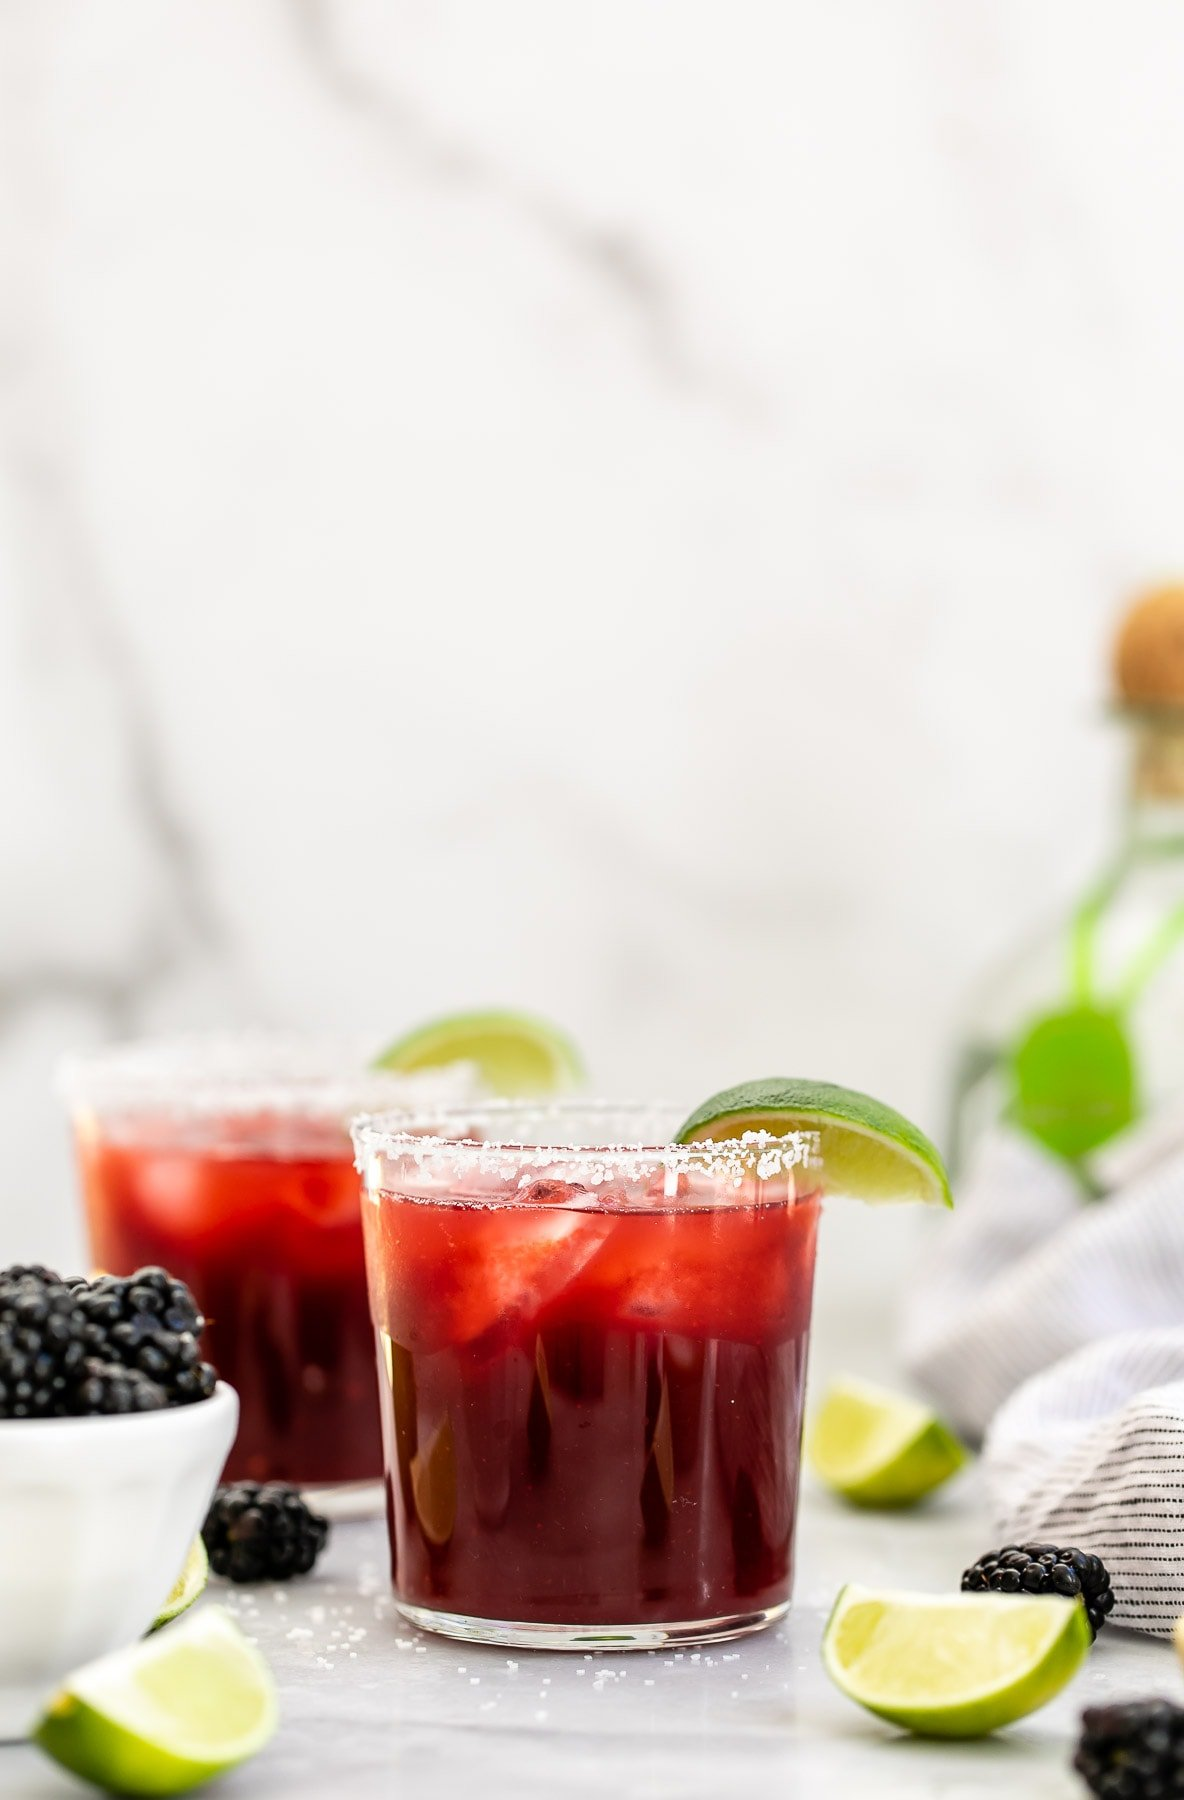 Blackberry margarita in a glass with lime wedges.